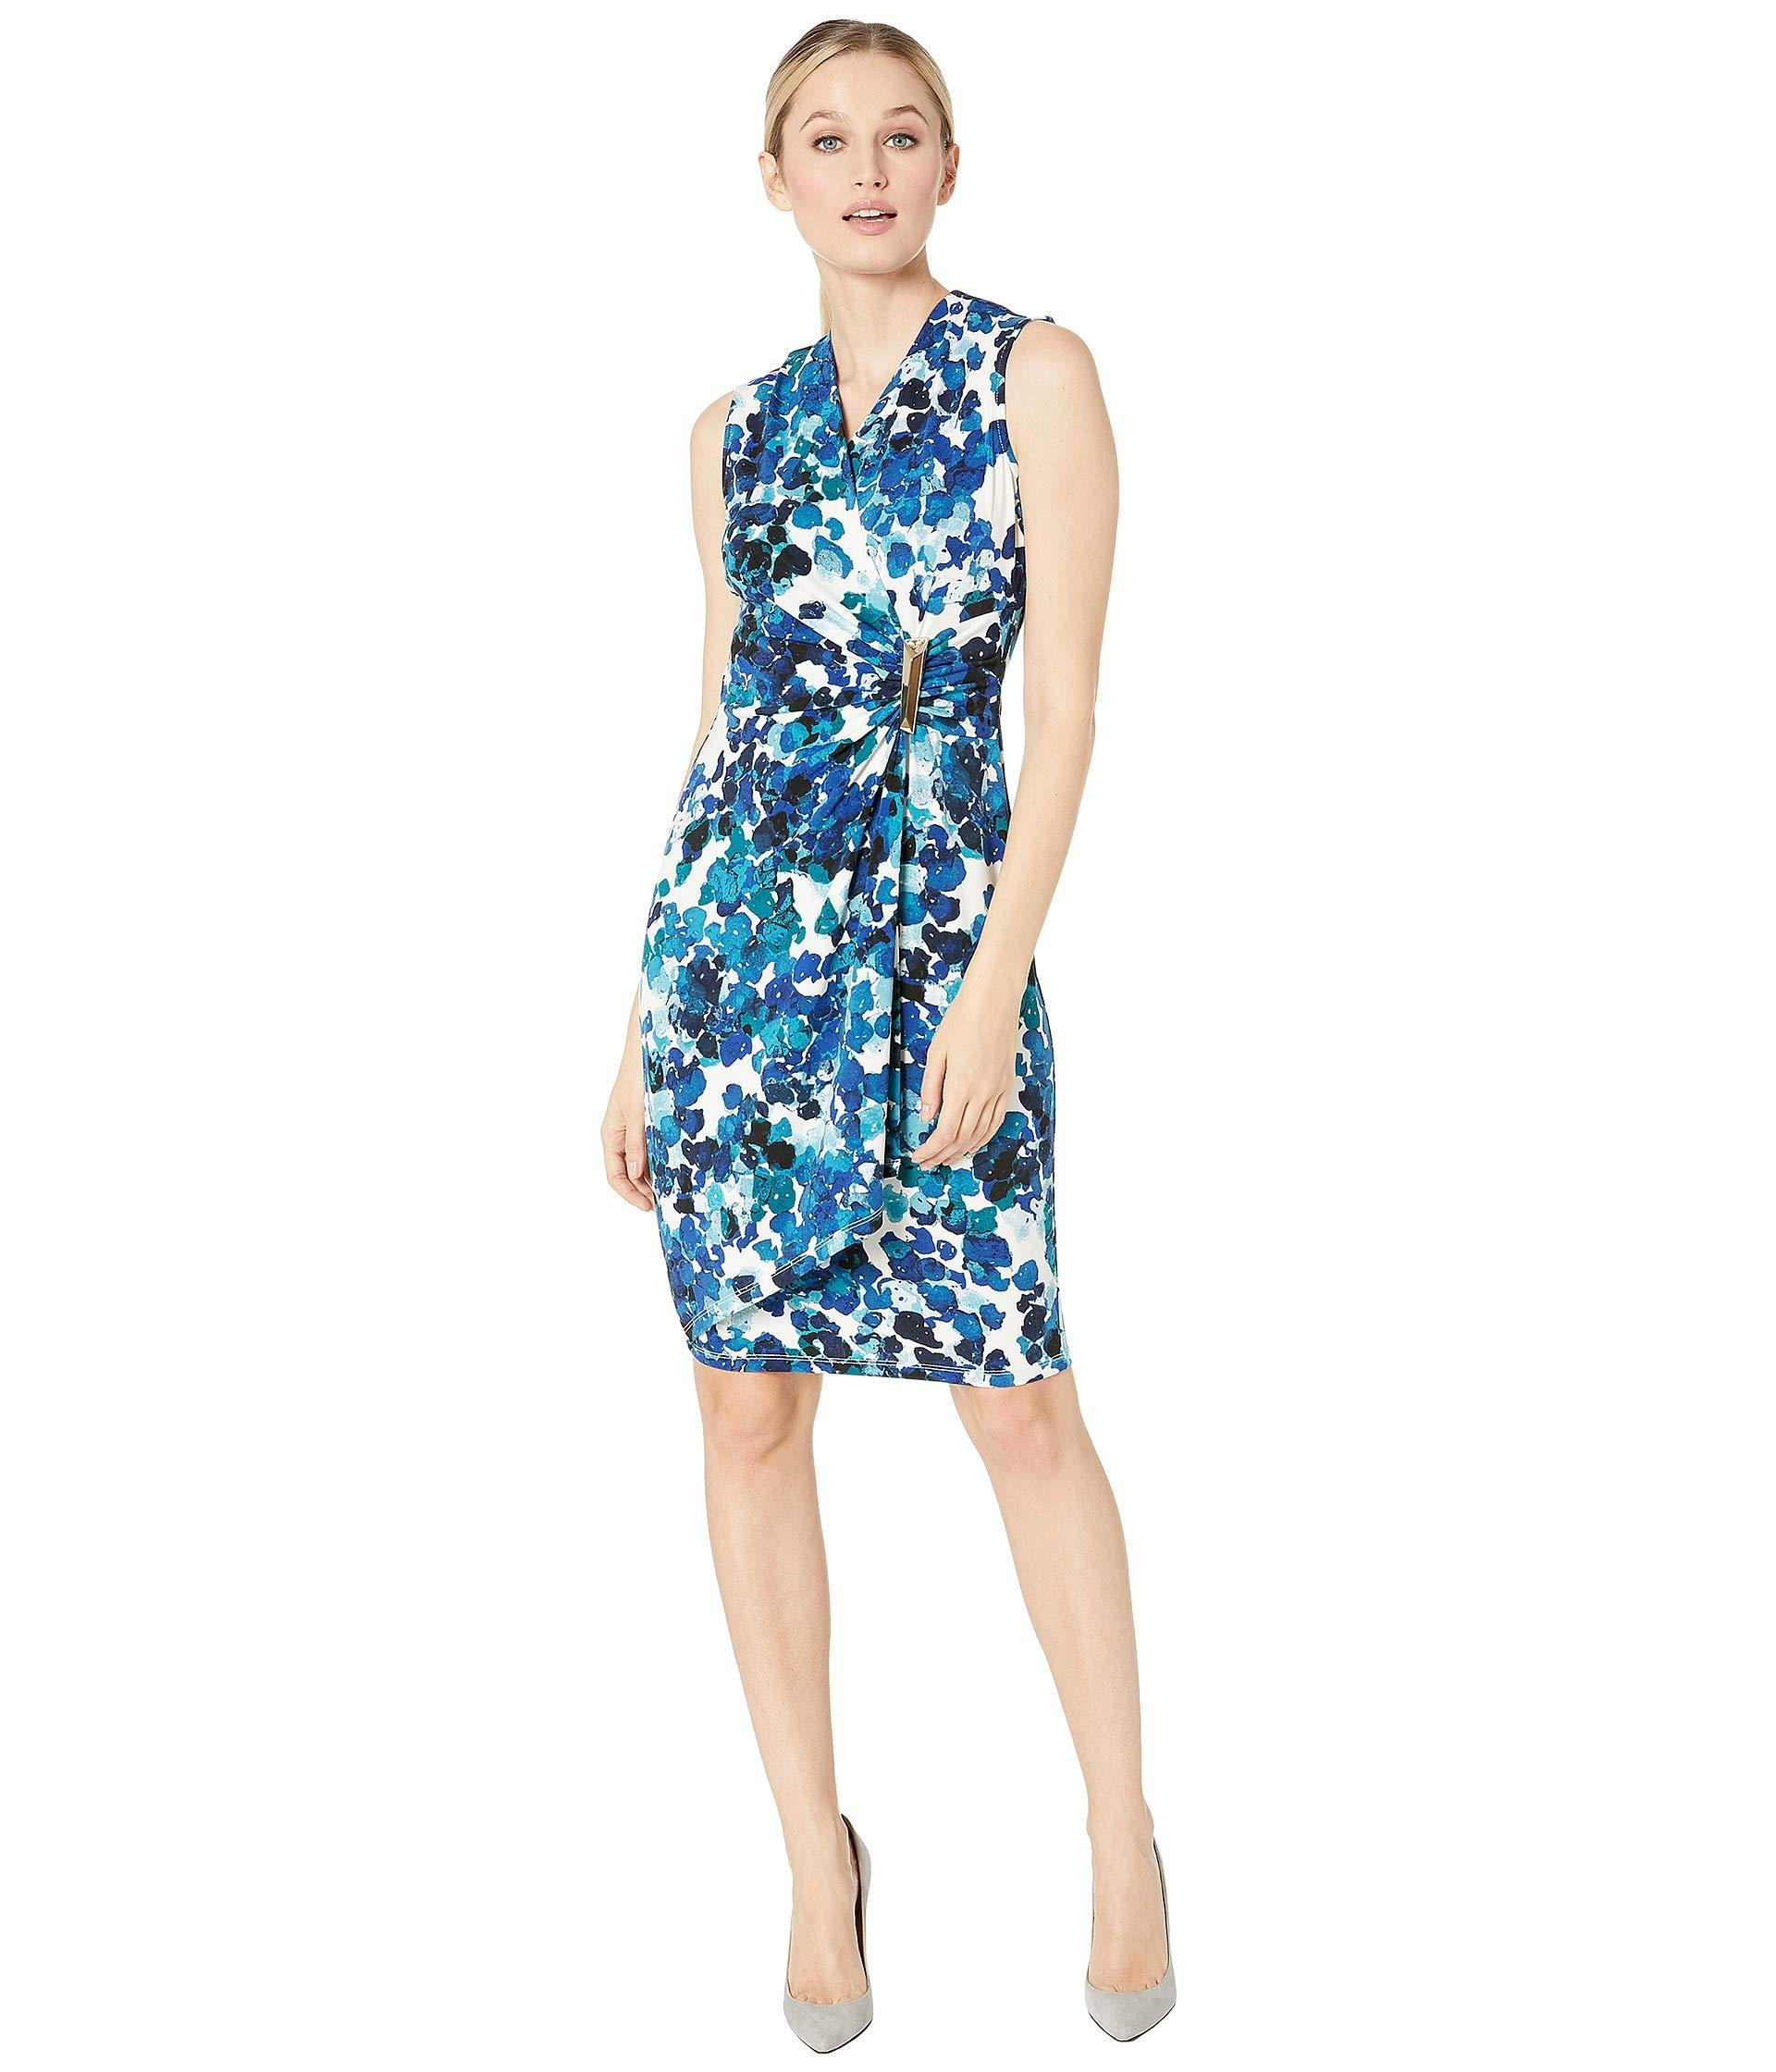 f97e5007a2 Calvin Klein. Blue Sleeveless Floral Print Faux Wrap Dress With Side ...